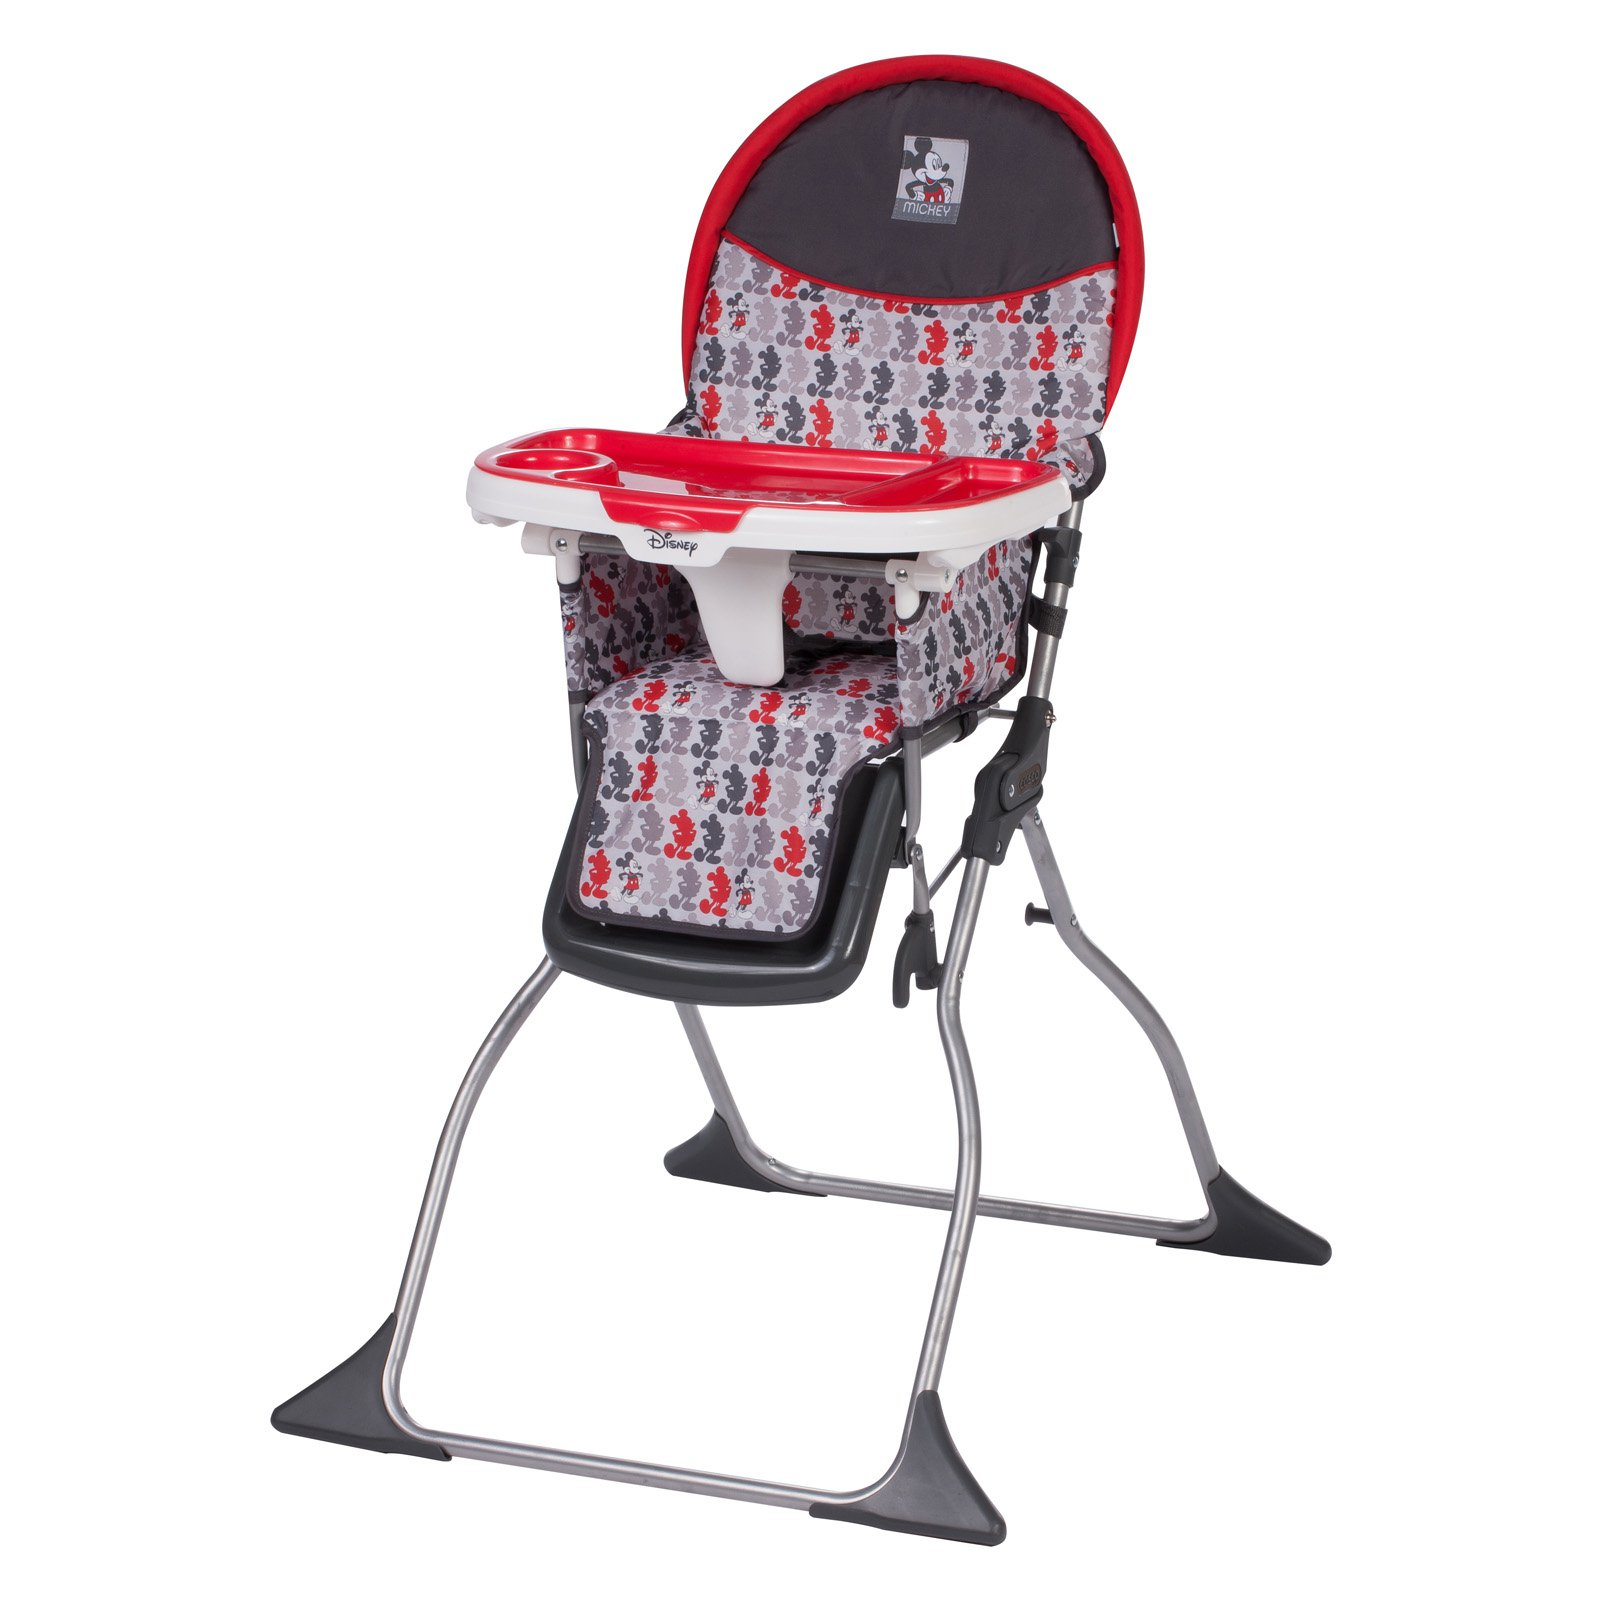 Disney Baby Simple Fold Plus High Chair - Mickey Line Up